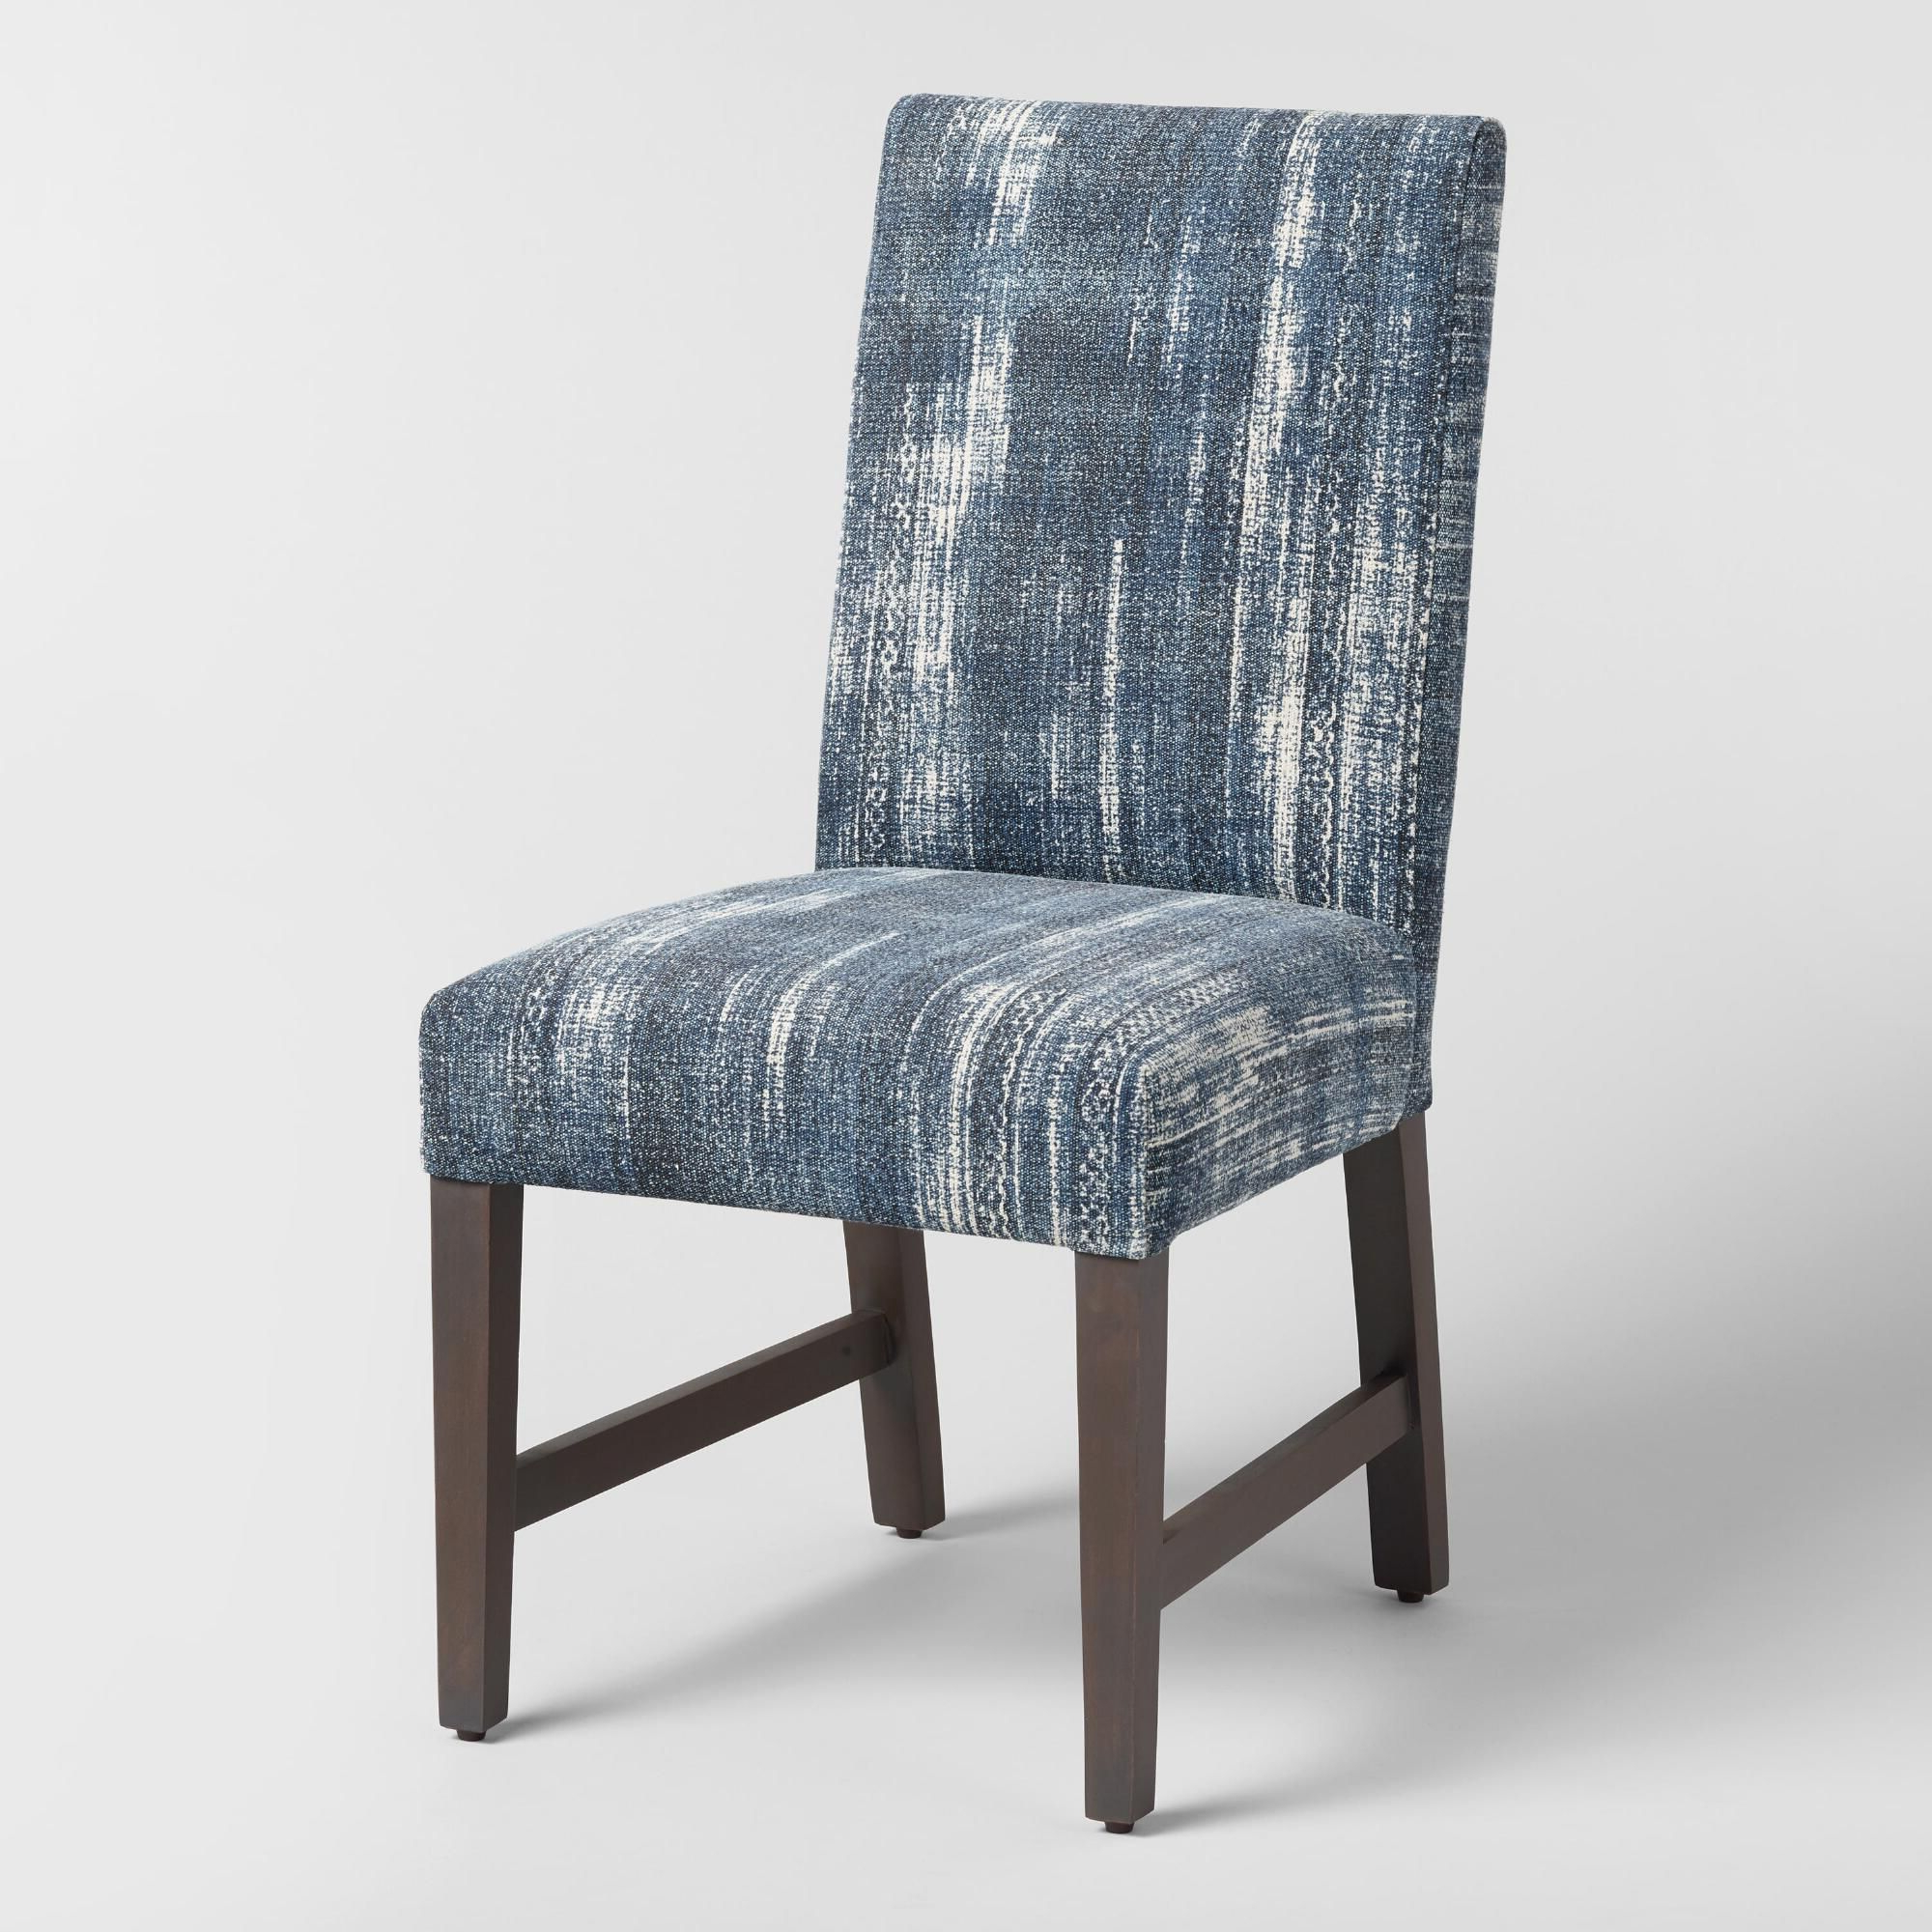 2020 Indigo Blue Emmett Upholstered Dining Chairs Set Of 2 Throughout Aime Upholstered Parsons Chairs In Beige (View 18 of 20)